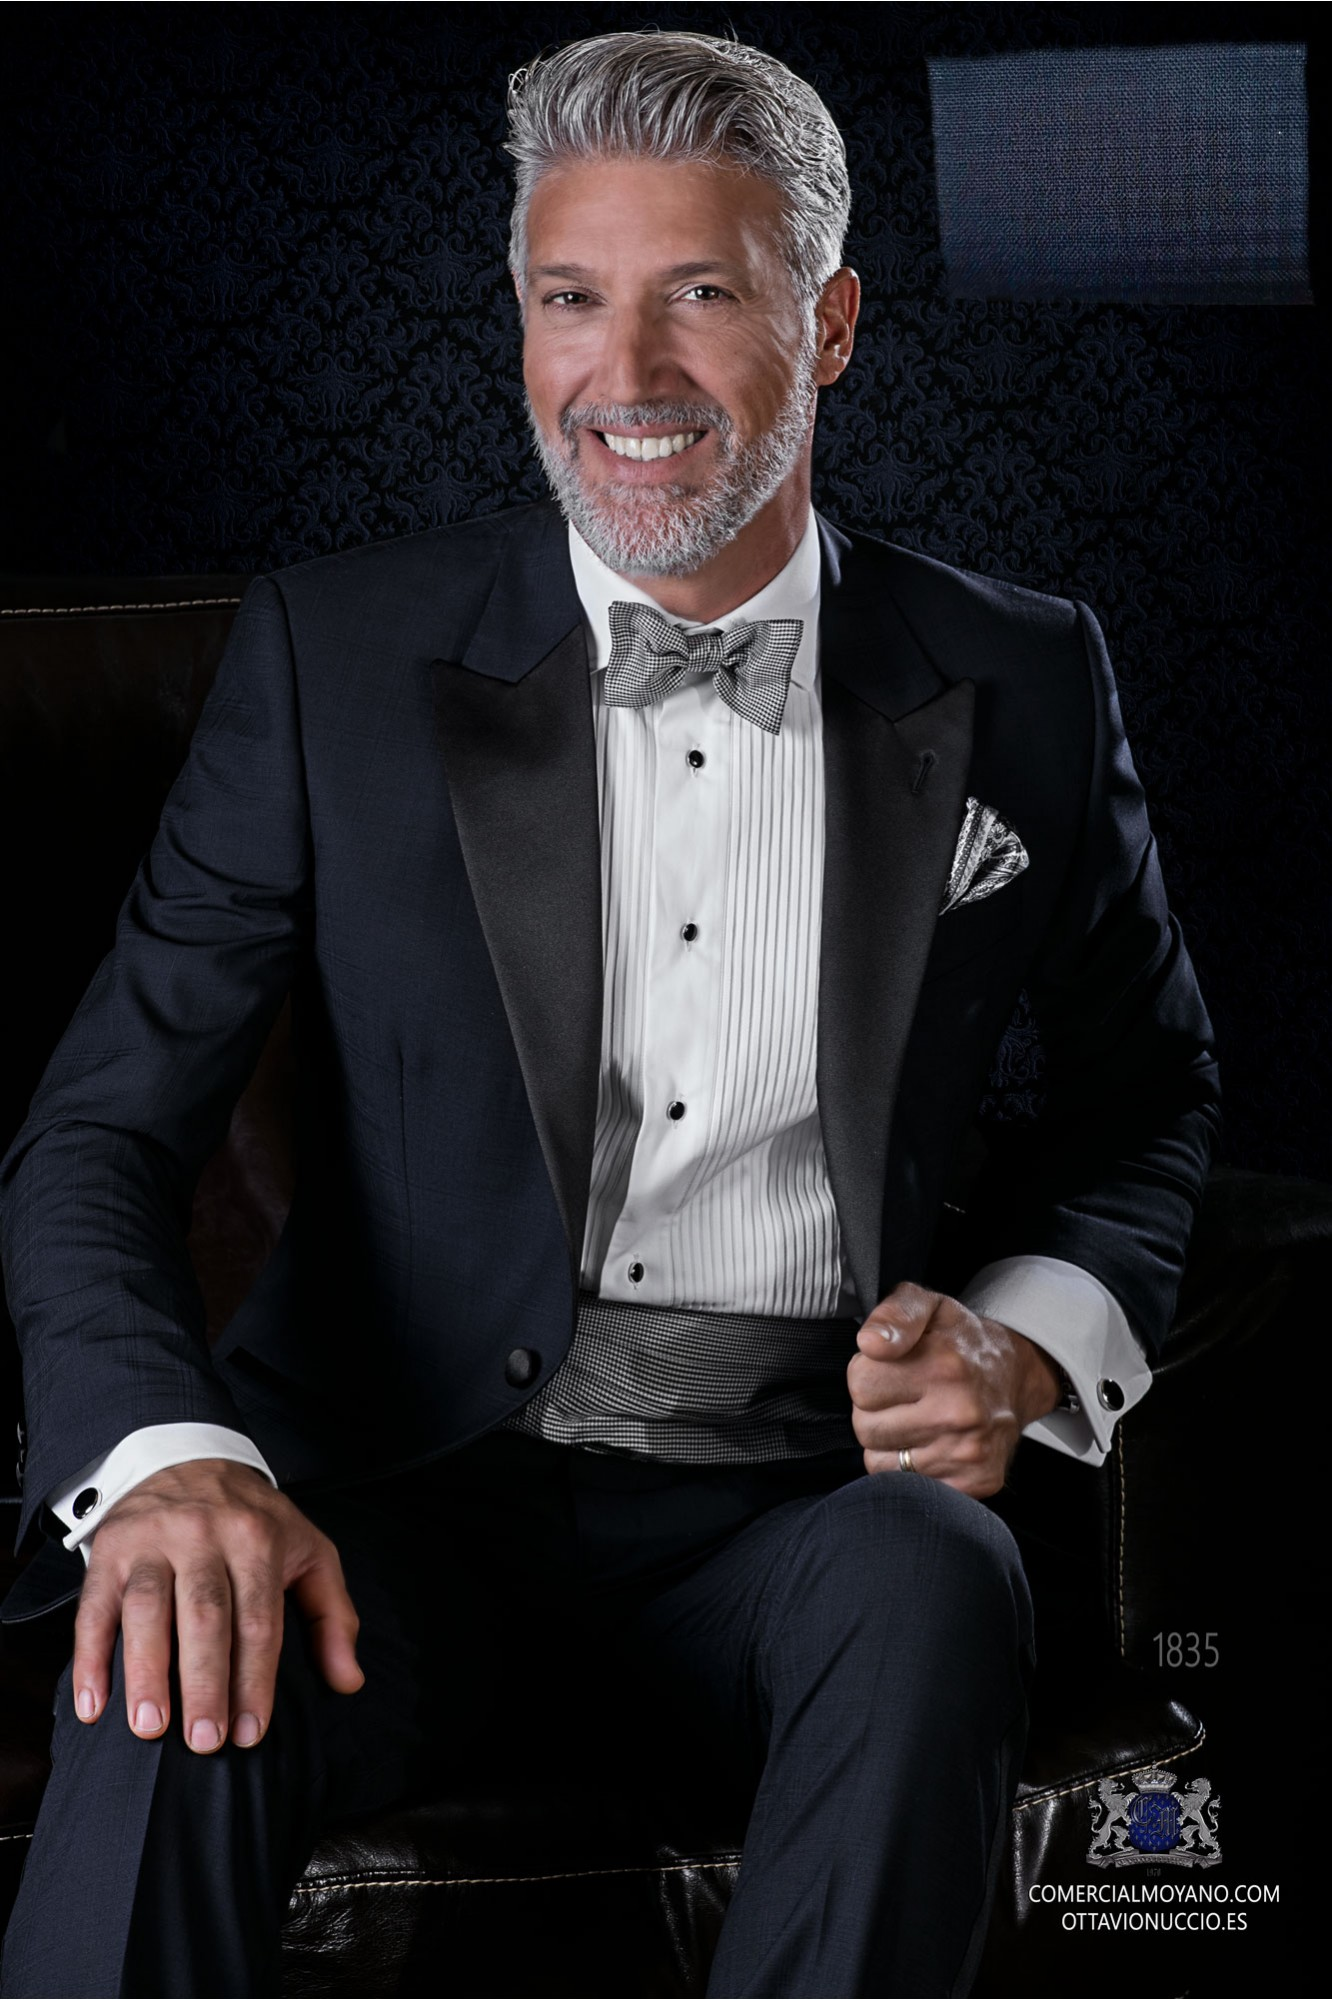 Italian bespoke pure wool over check blue tuxedo model 1835 Ottavio Nuccio Gala